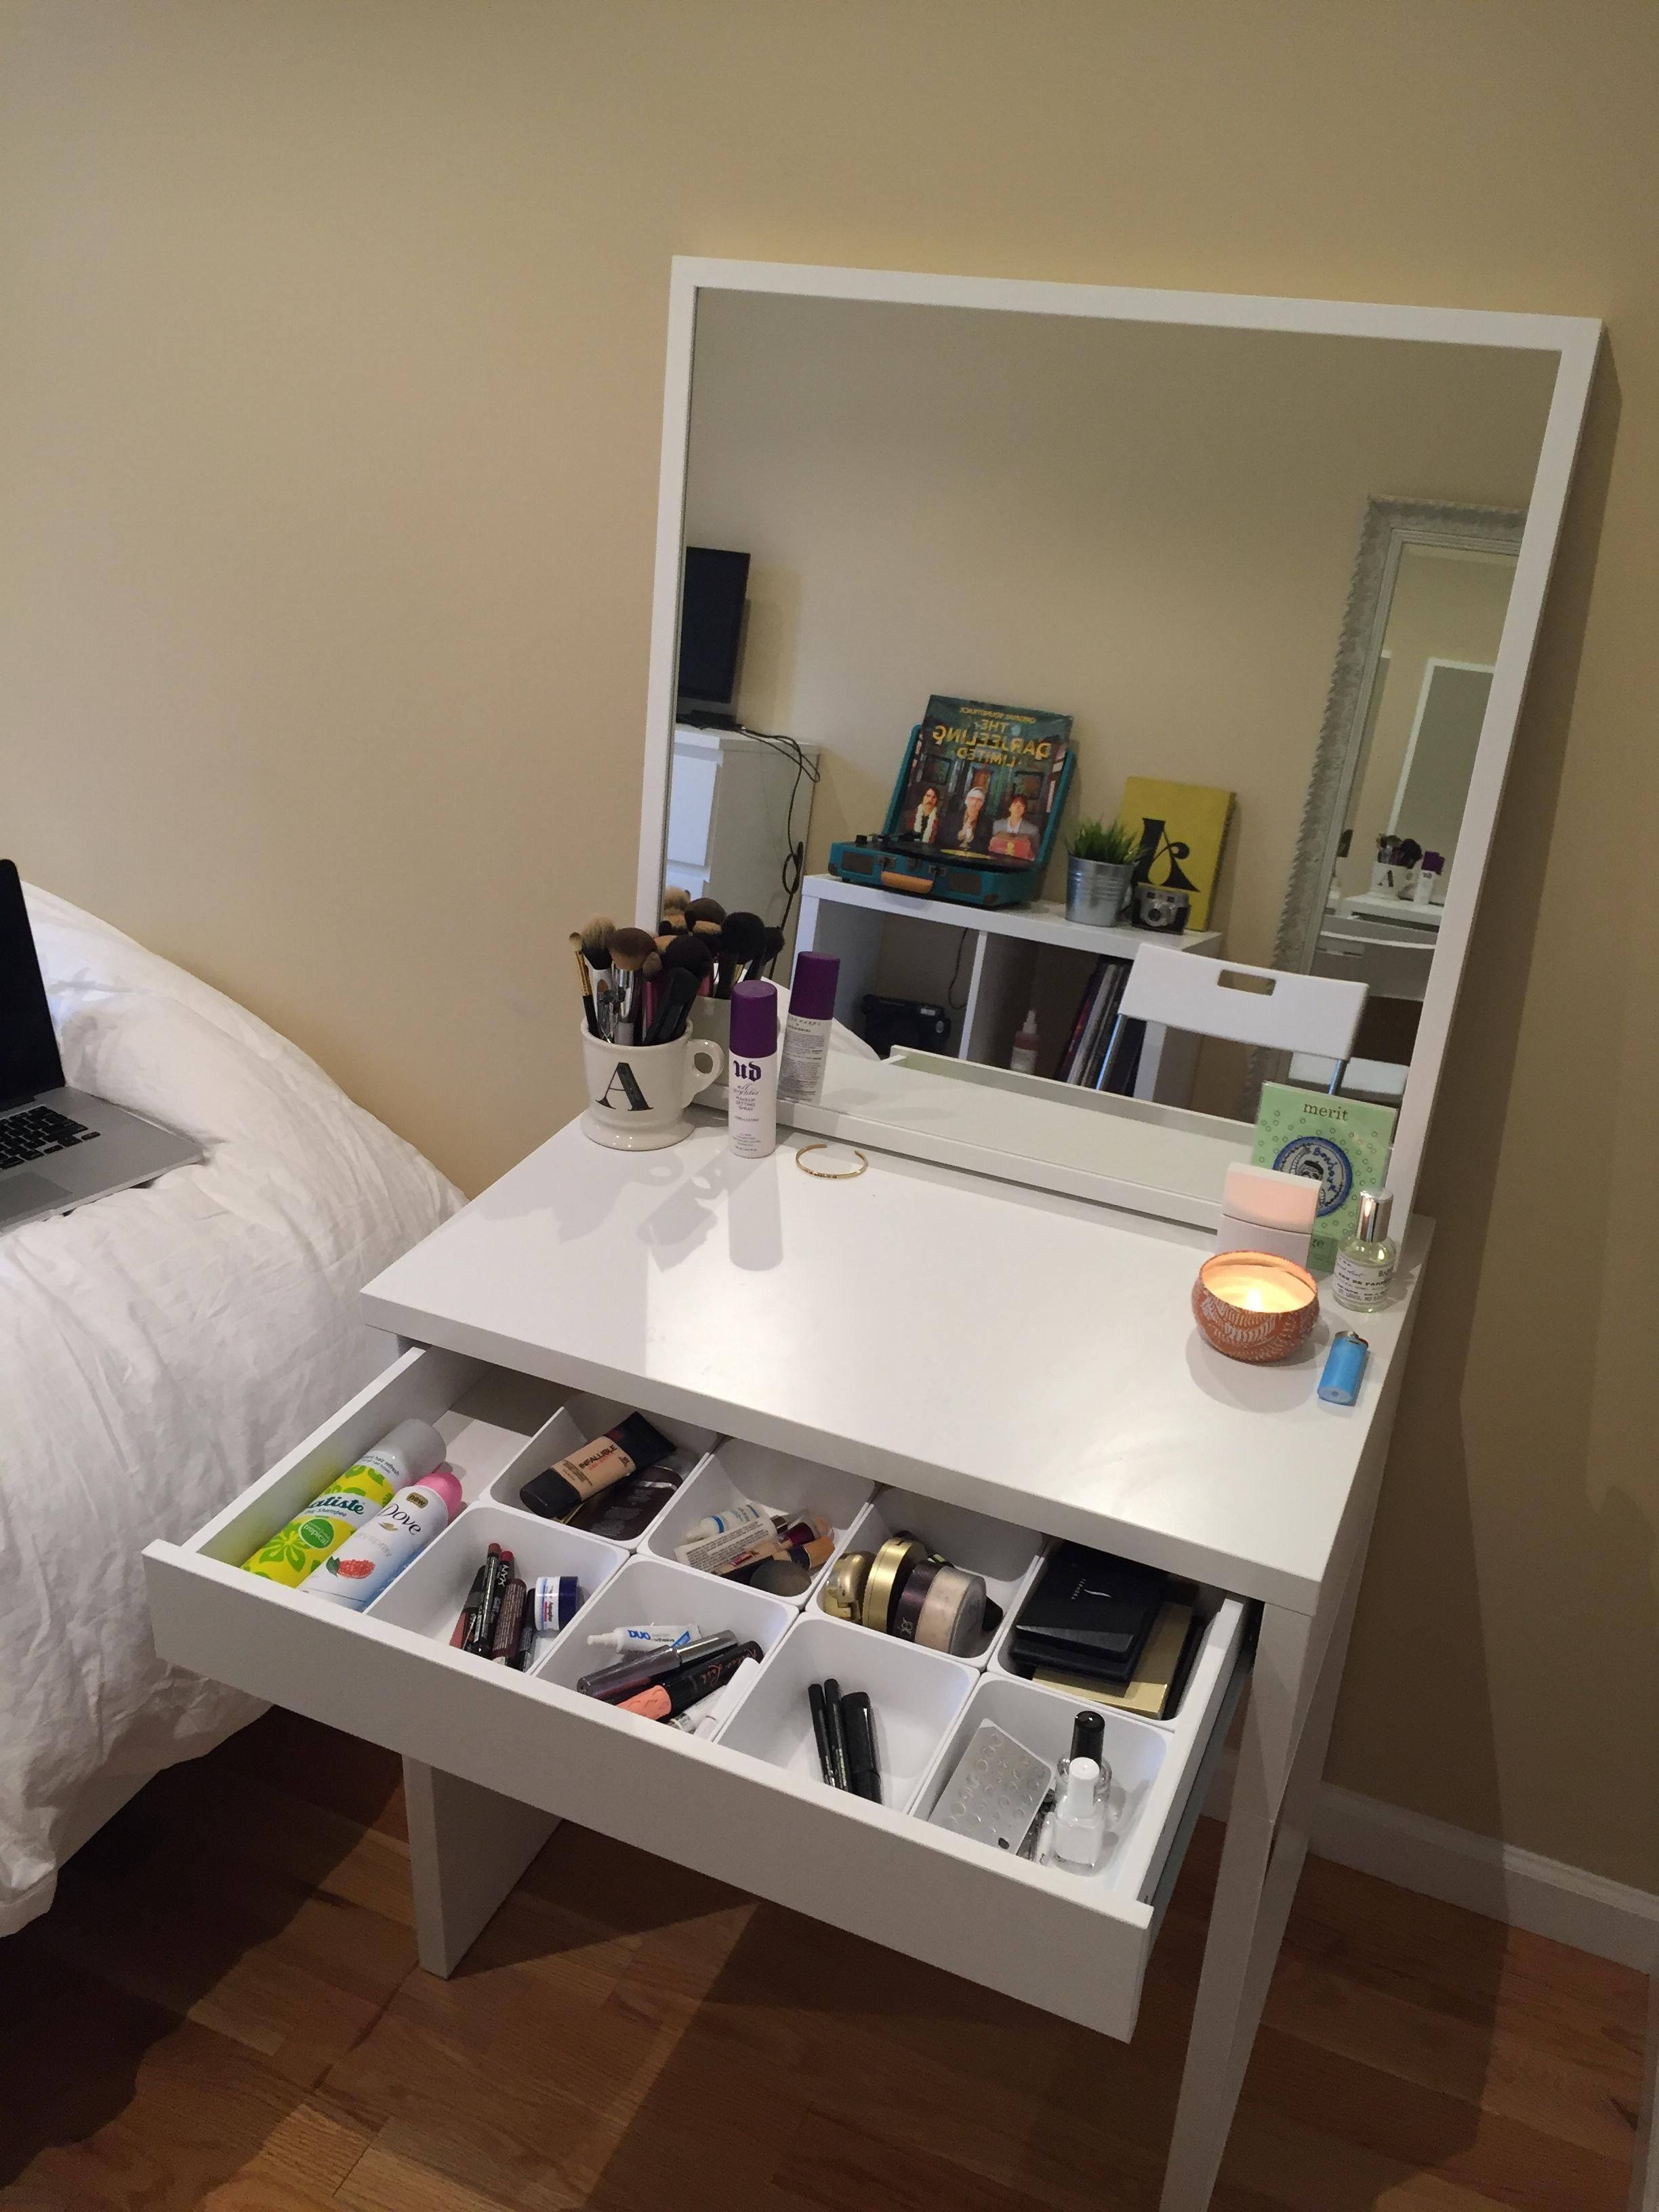 Makeup Table Perth All Ikea Micke Desk 49 99 Stave Mirror 29 99 Vanity